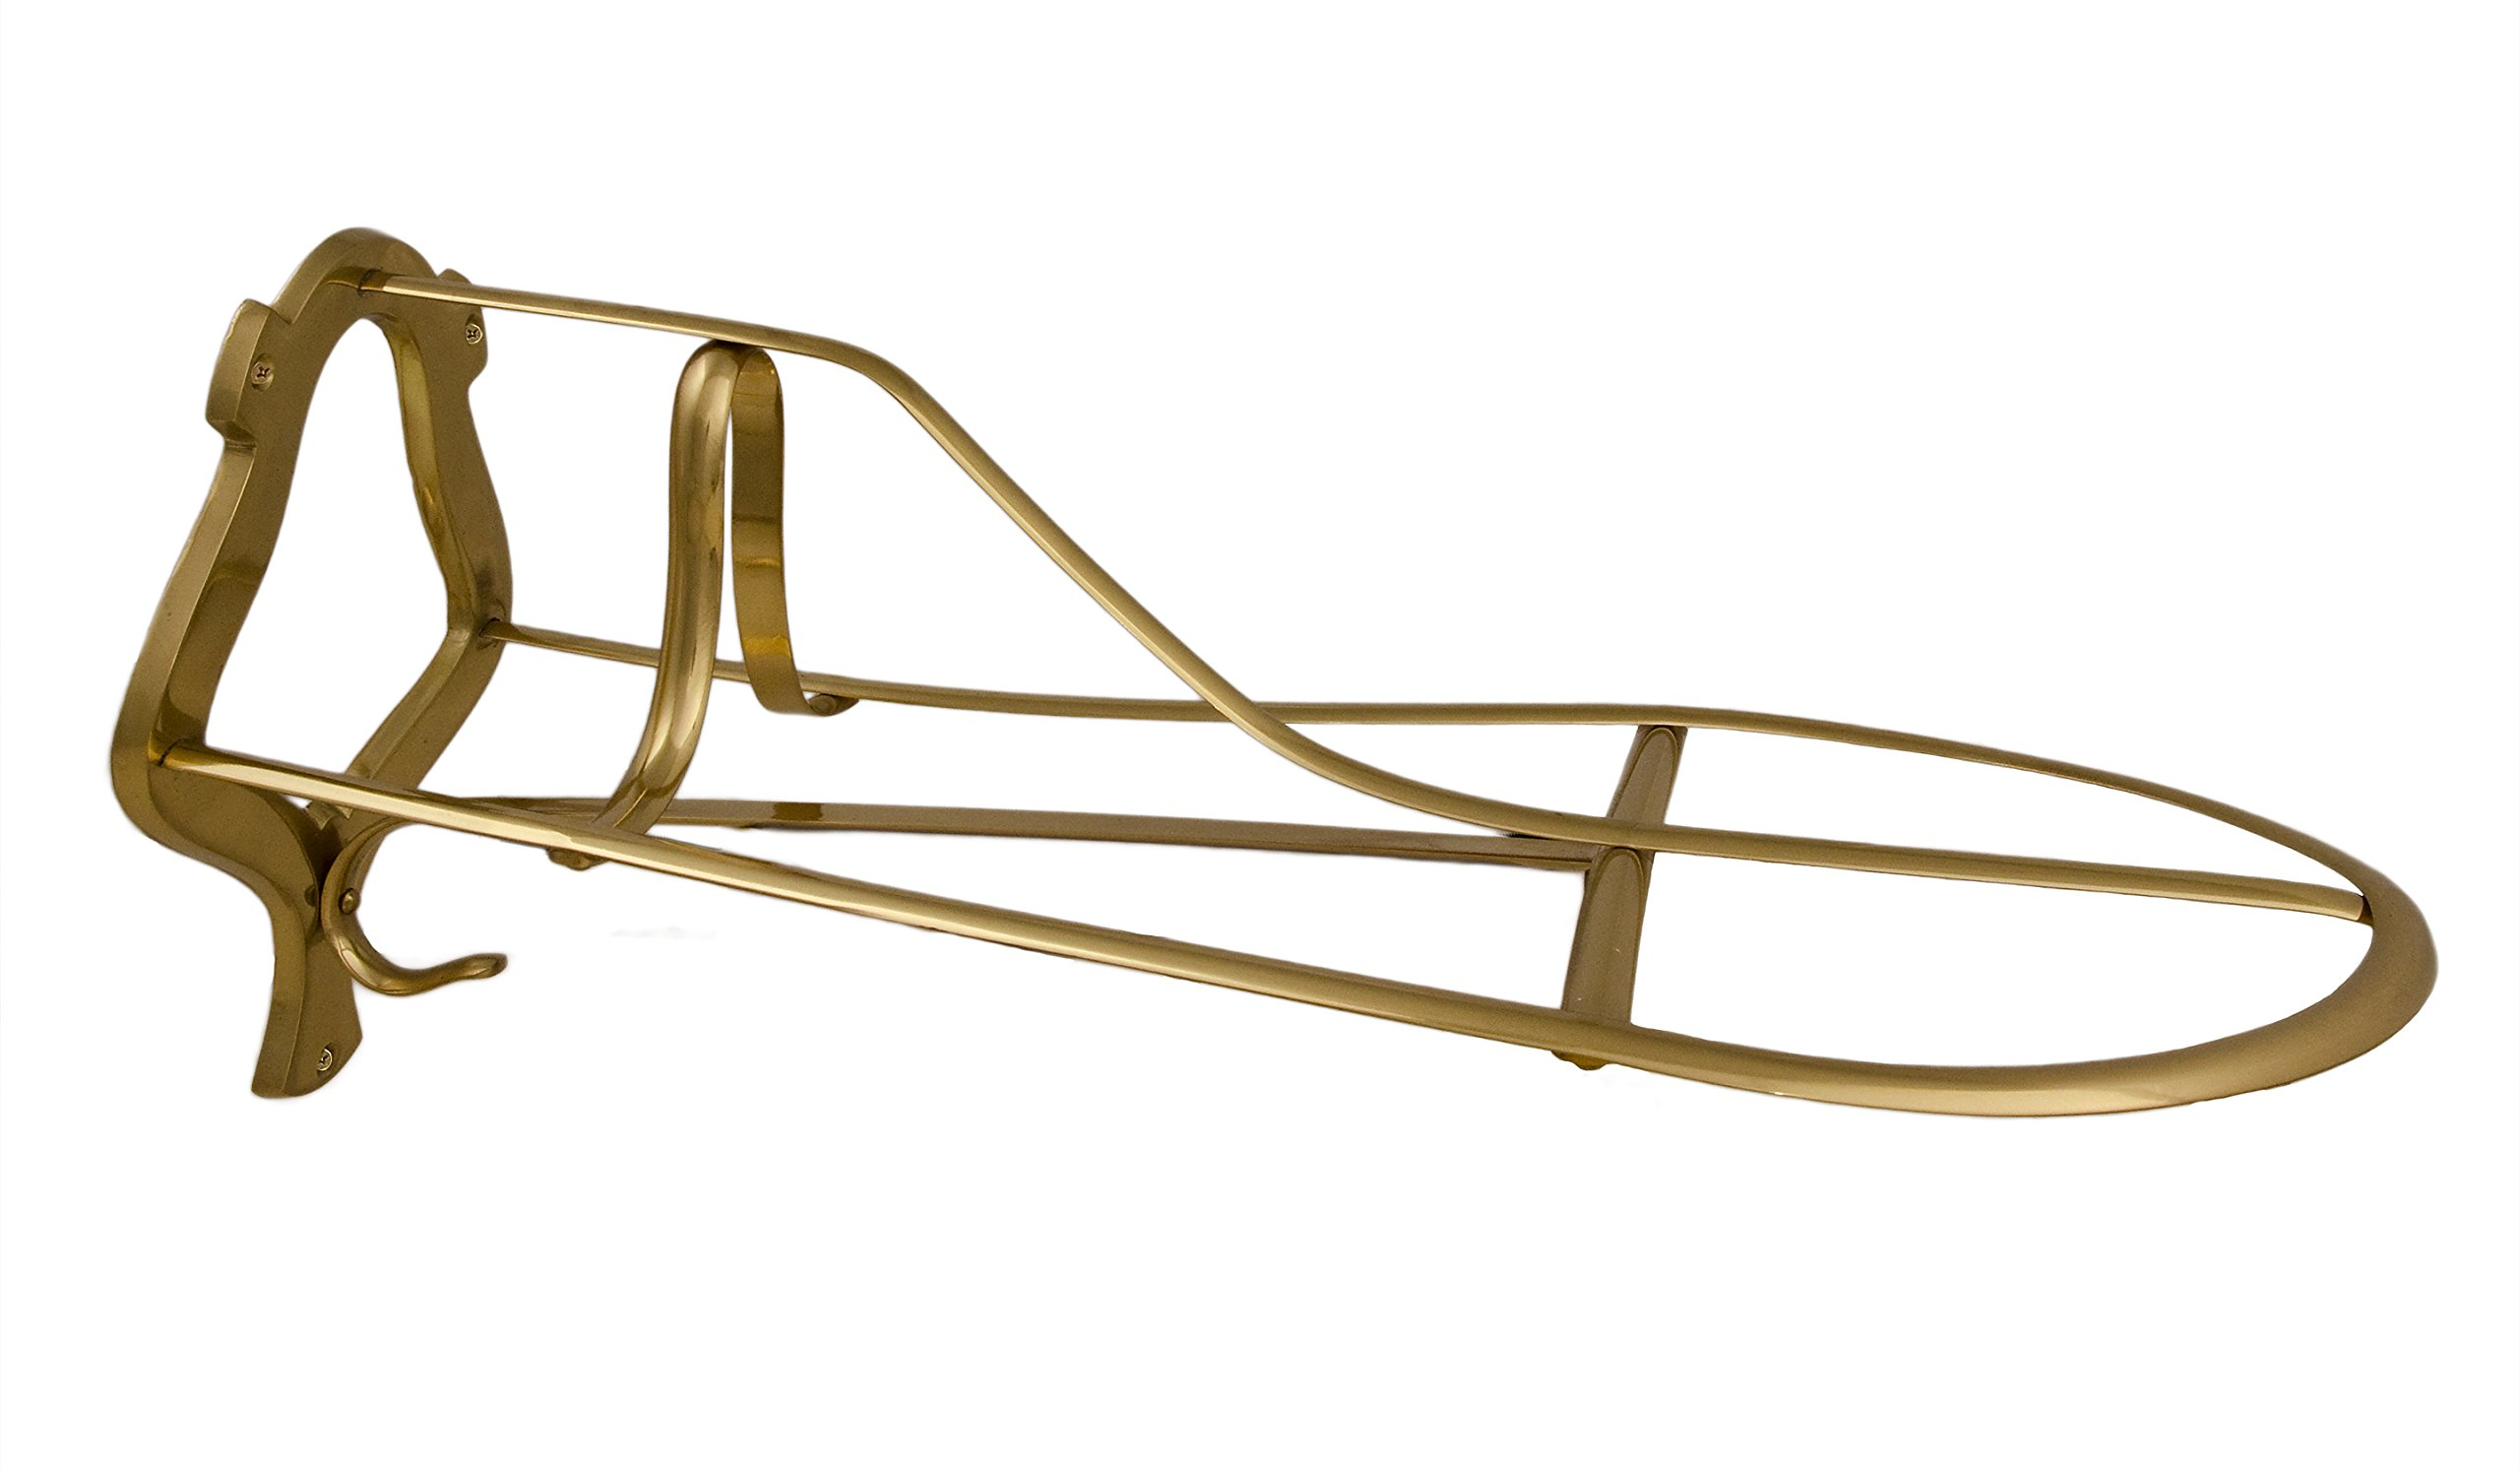 Tack Room Studio Brass Saddle Rack (Brass)